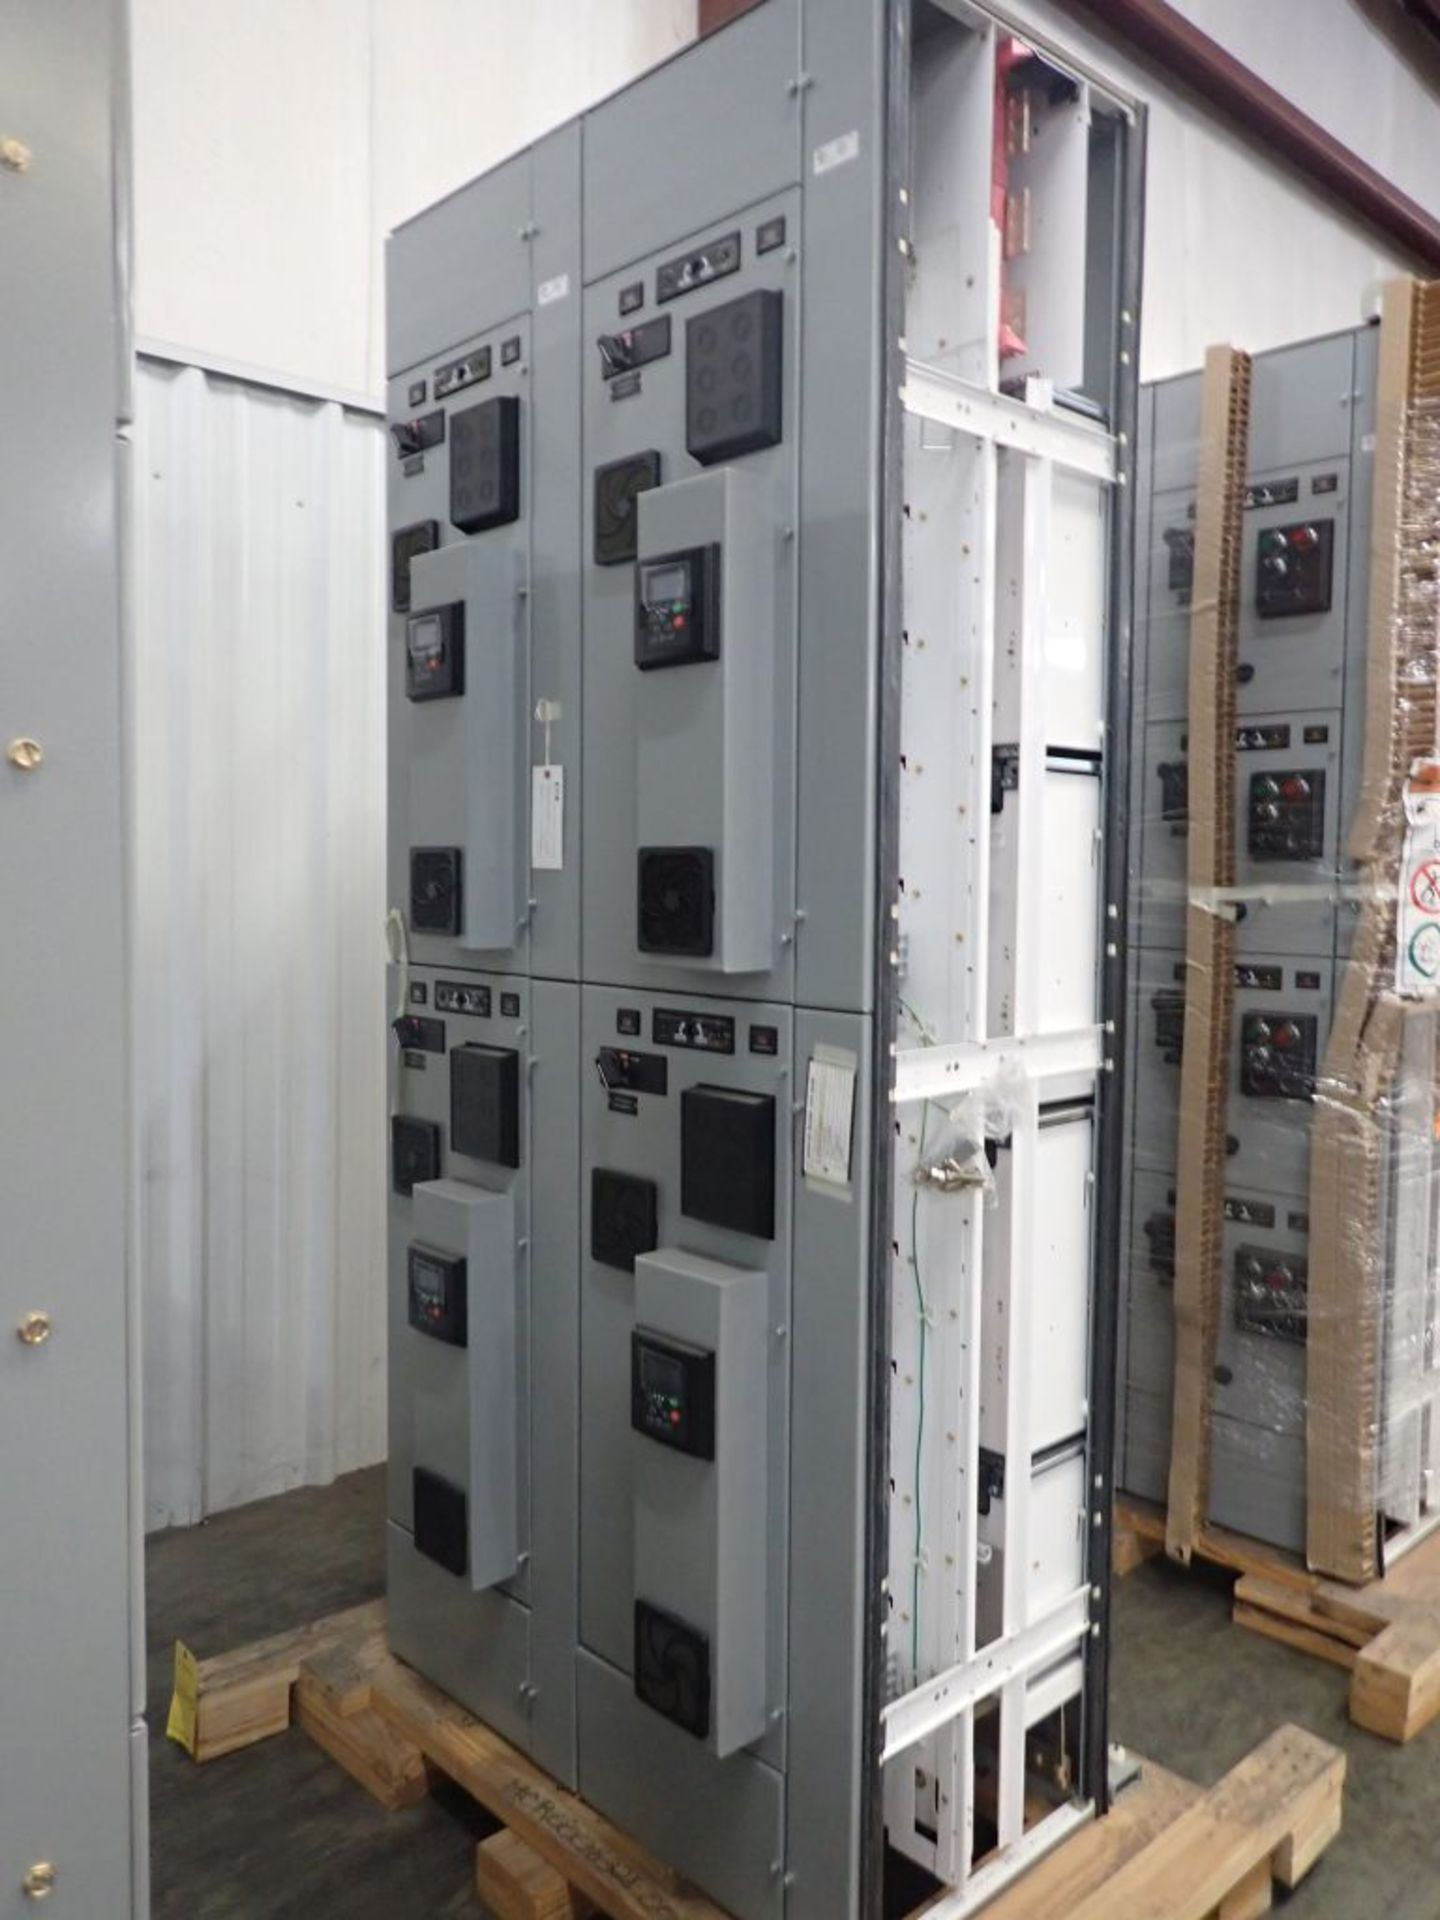 Eaton Freedom 2100 Series Motor Control Center | (2) F206-7A-10HP; (3) F206-15A-10HP; (1) FDRB-100A; - Image 2 of 87